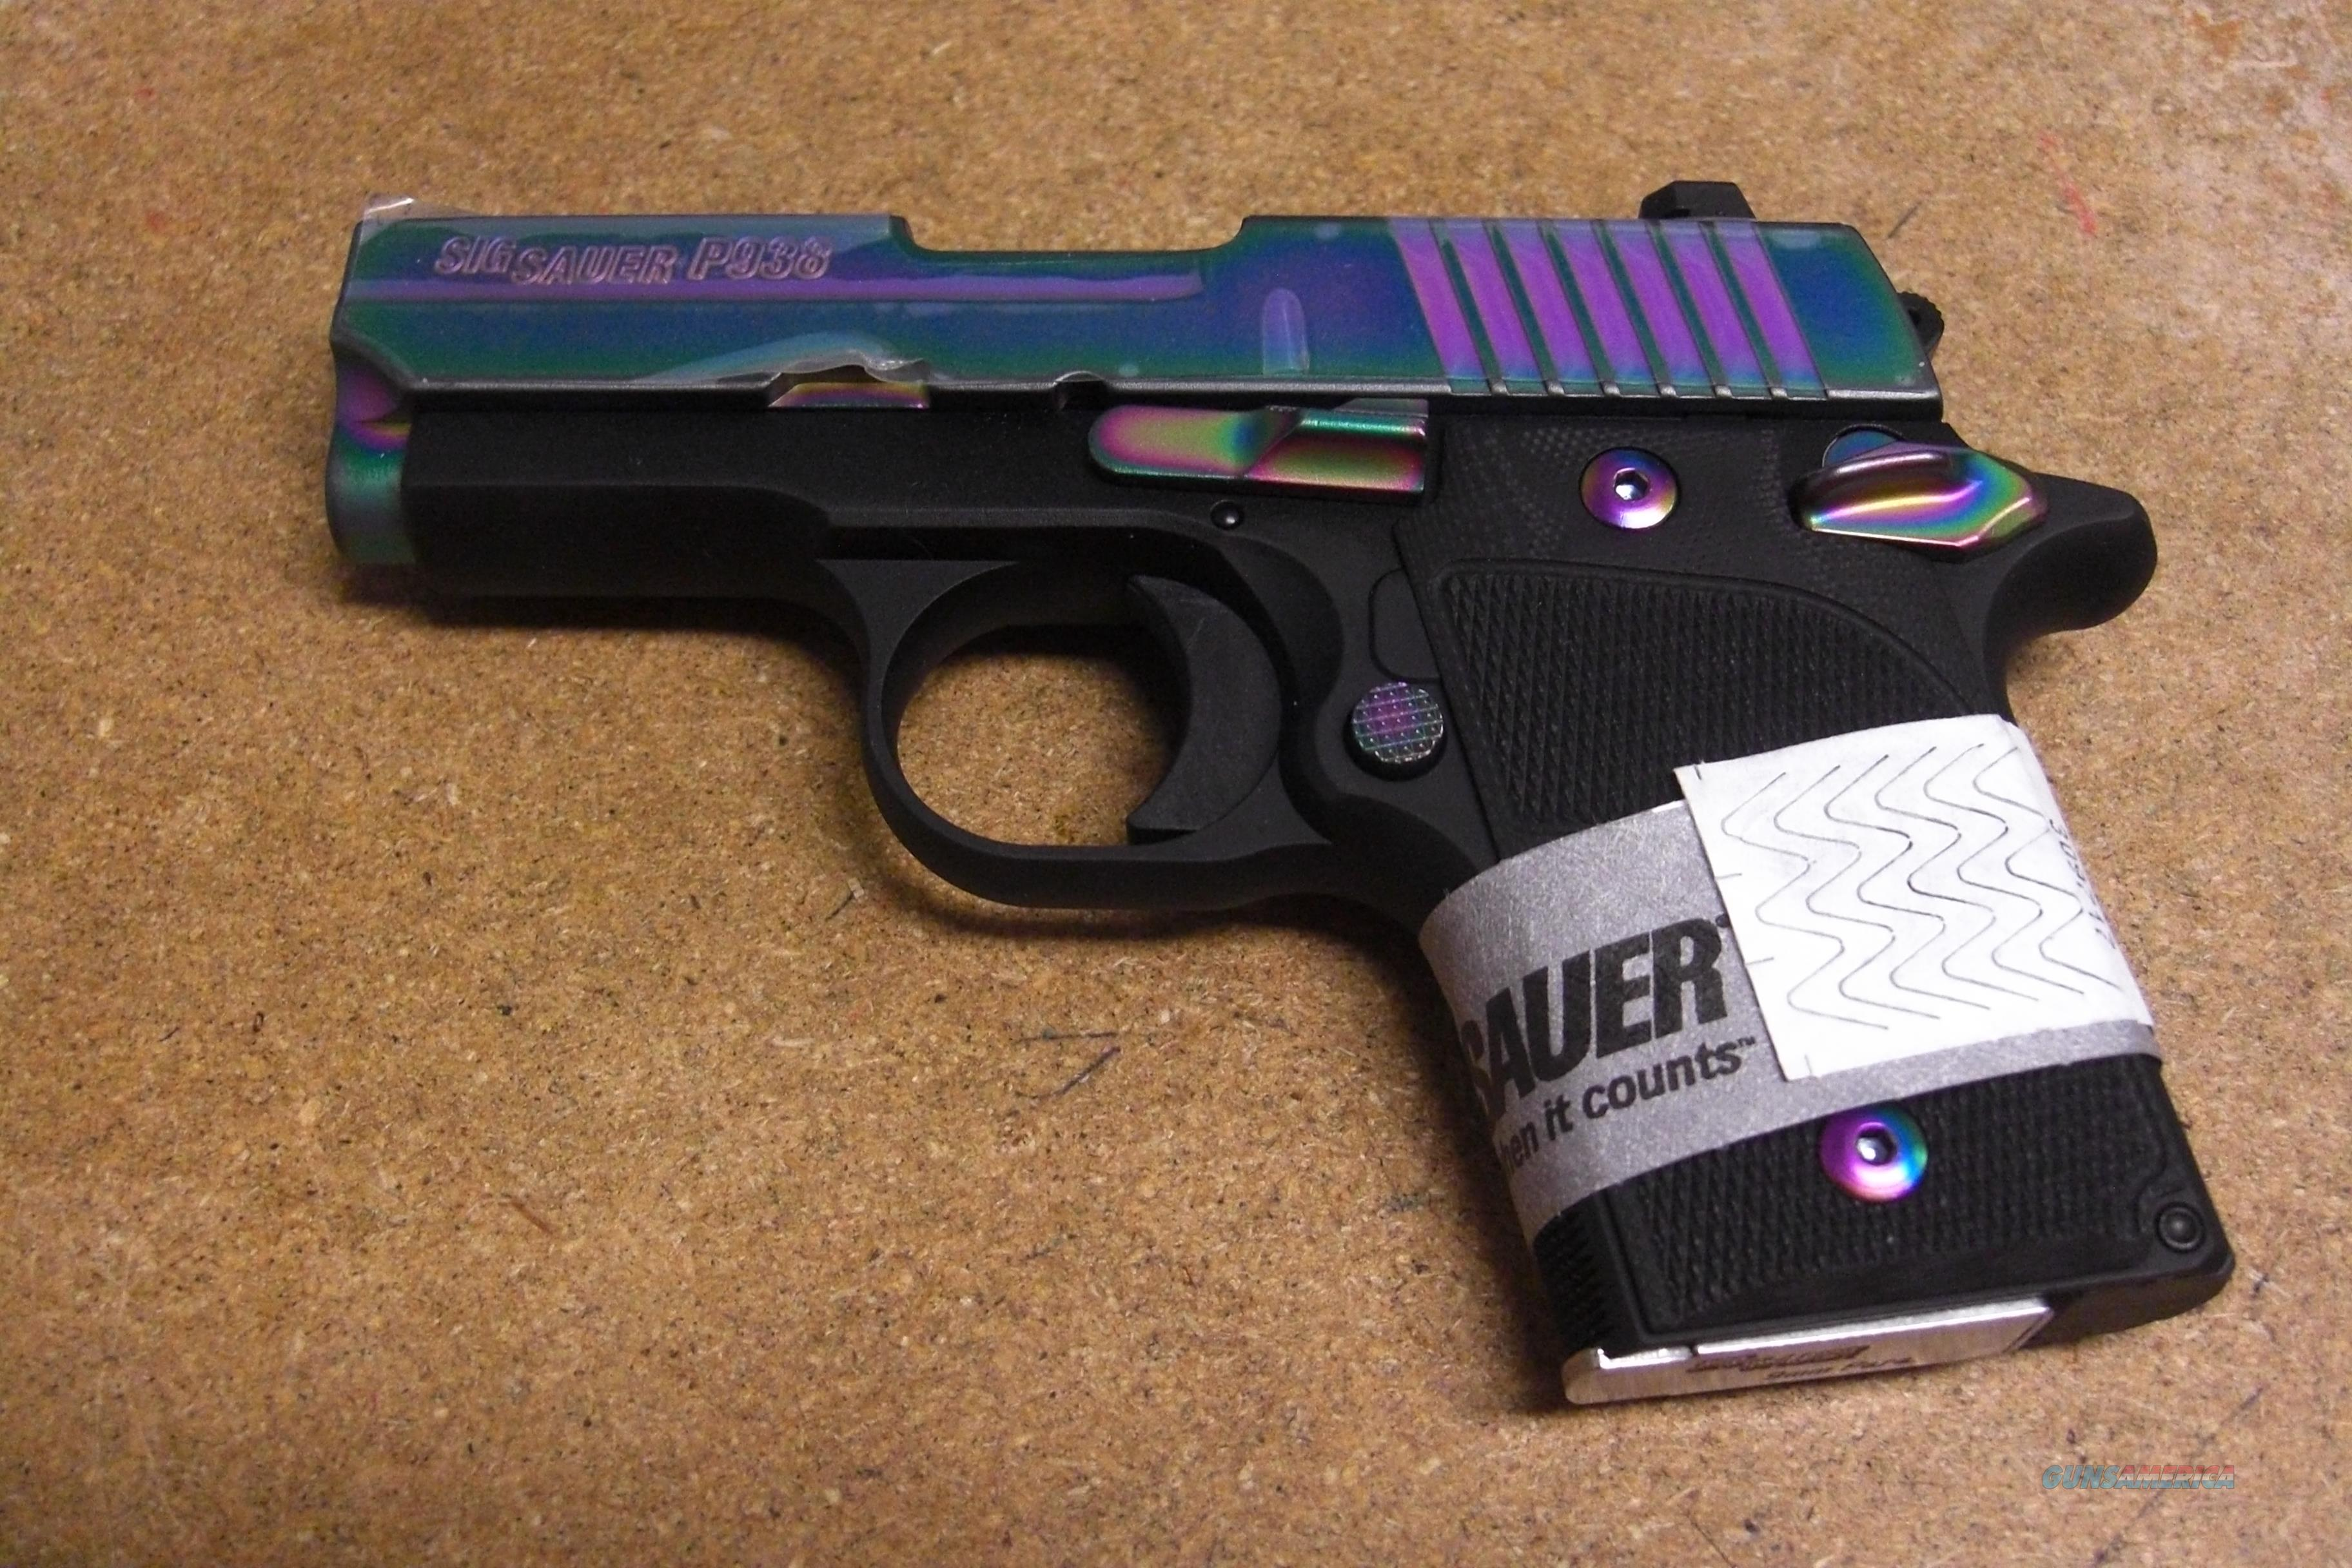 Sig Sauer P938 w/night sights, Rainbow slide   Guns > Pistols > Sig - Sauer/Sigarms Pistols > Other